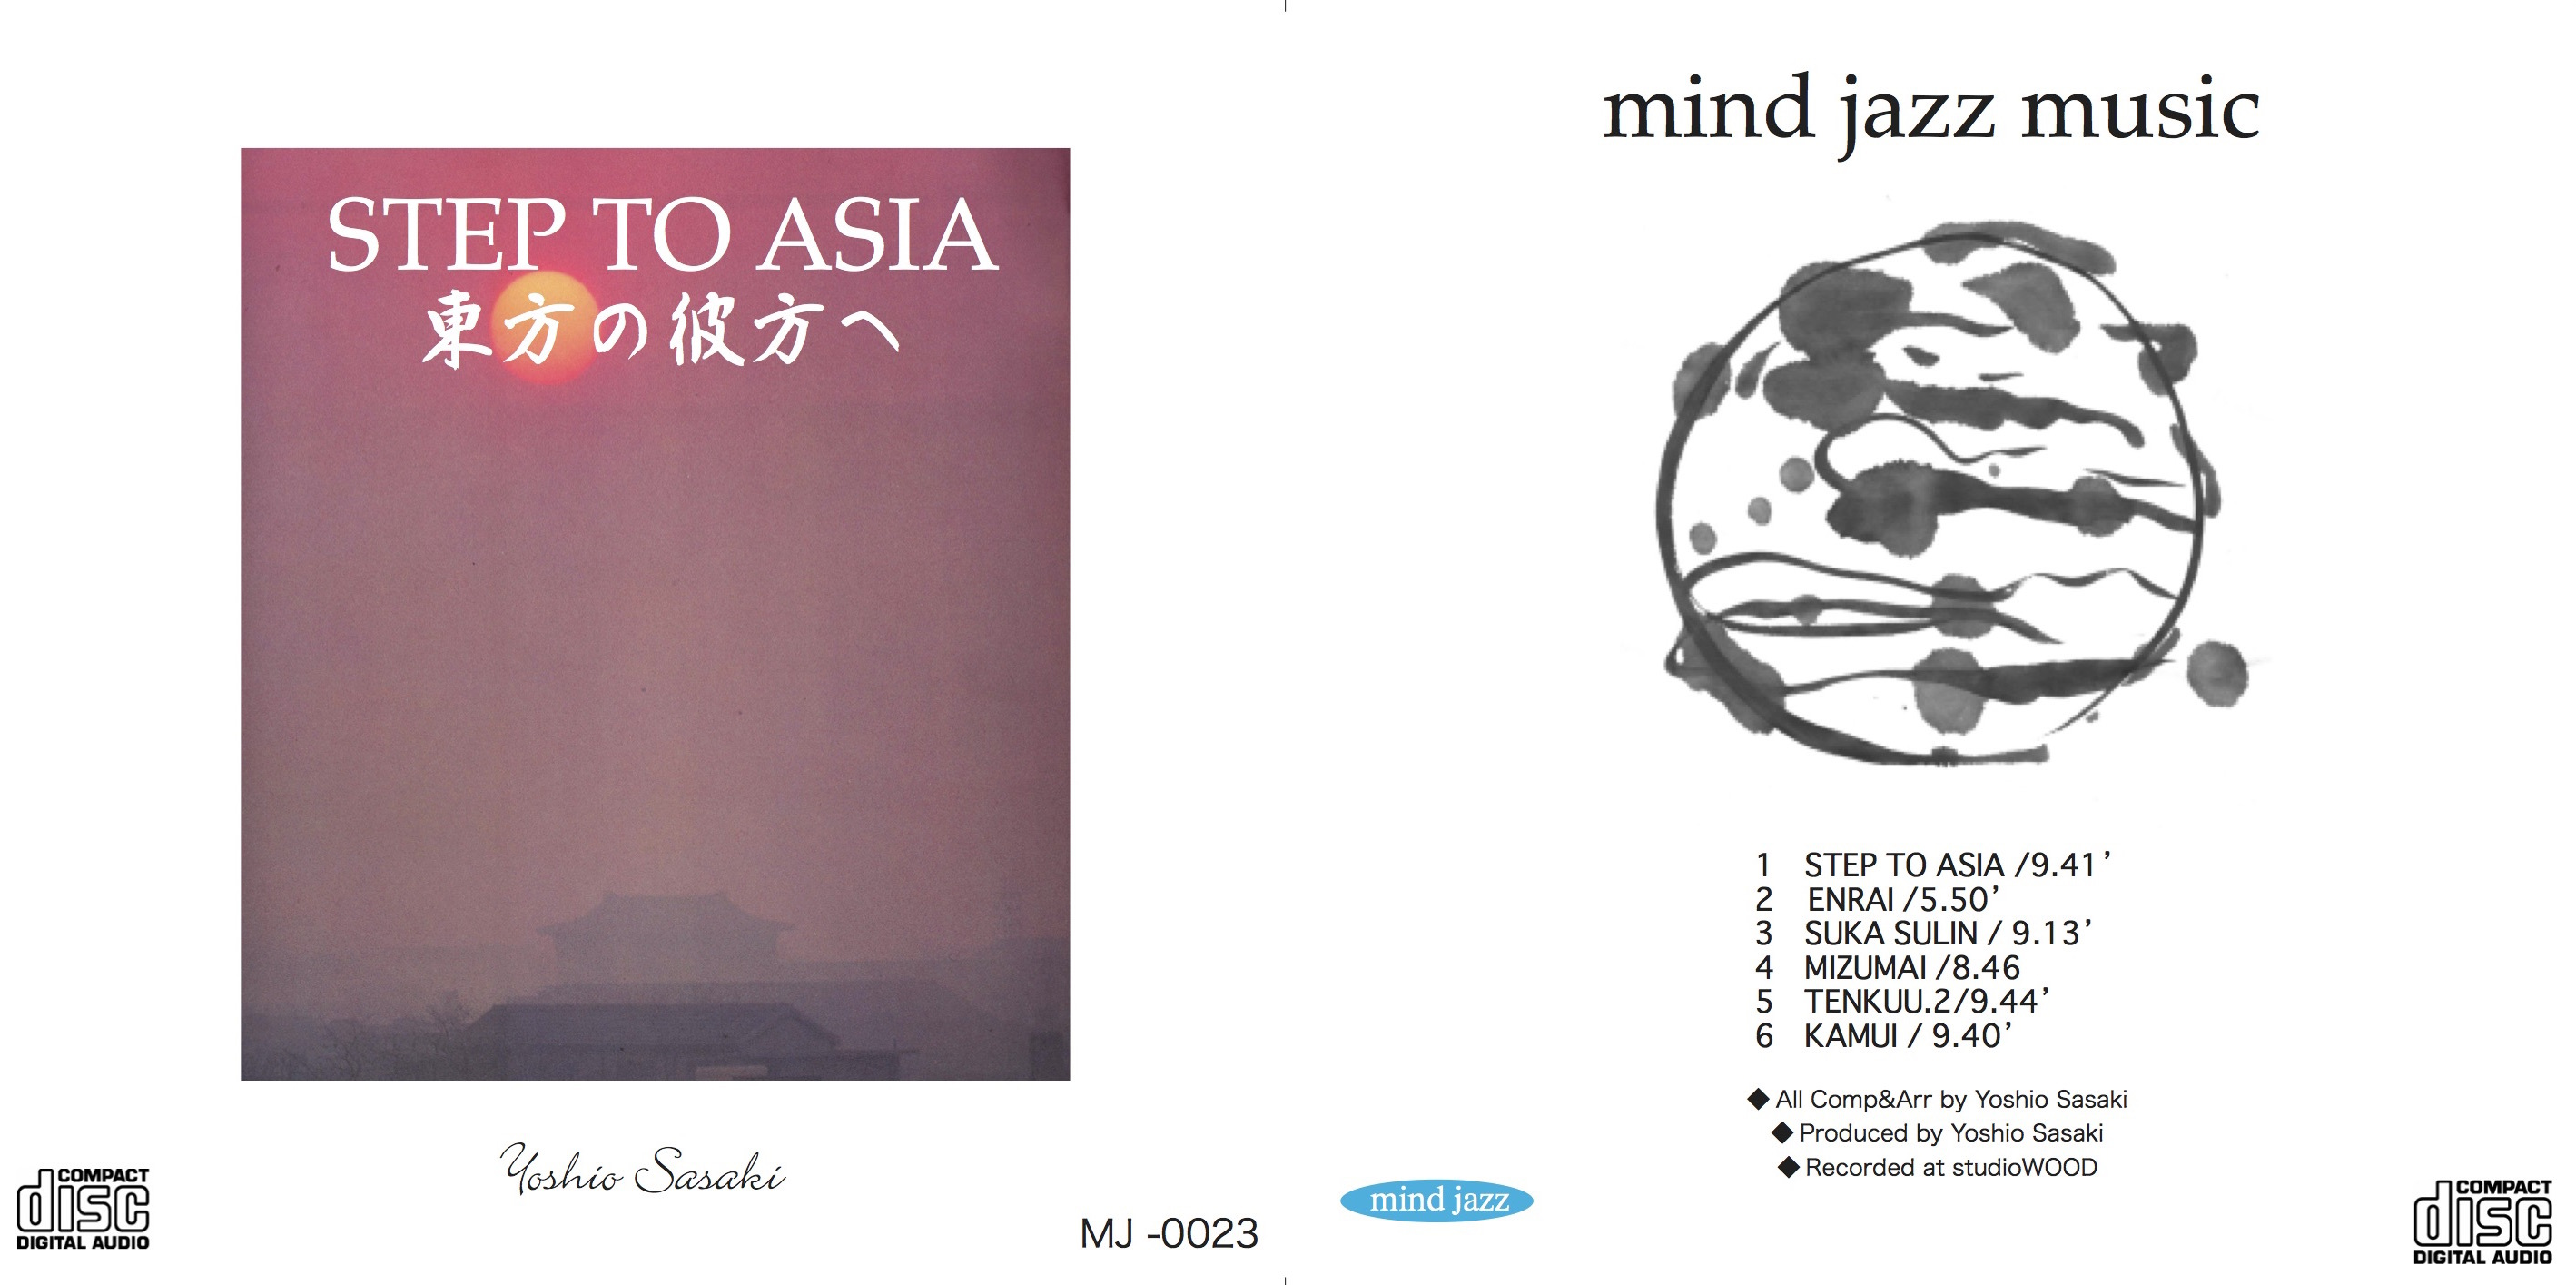 step to asiaジャケ